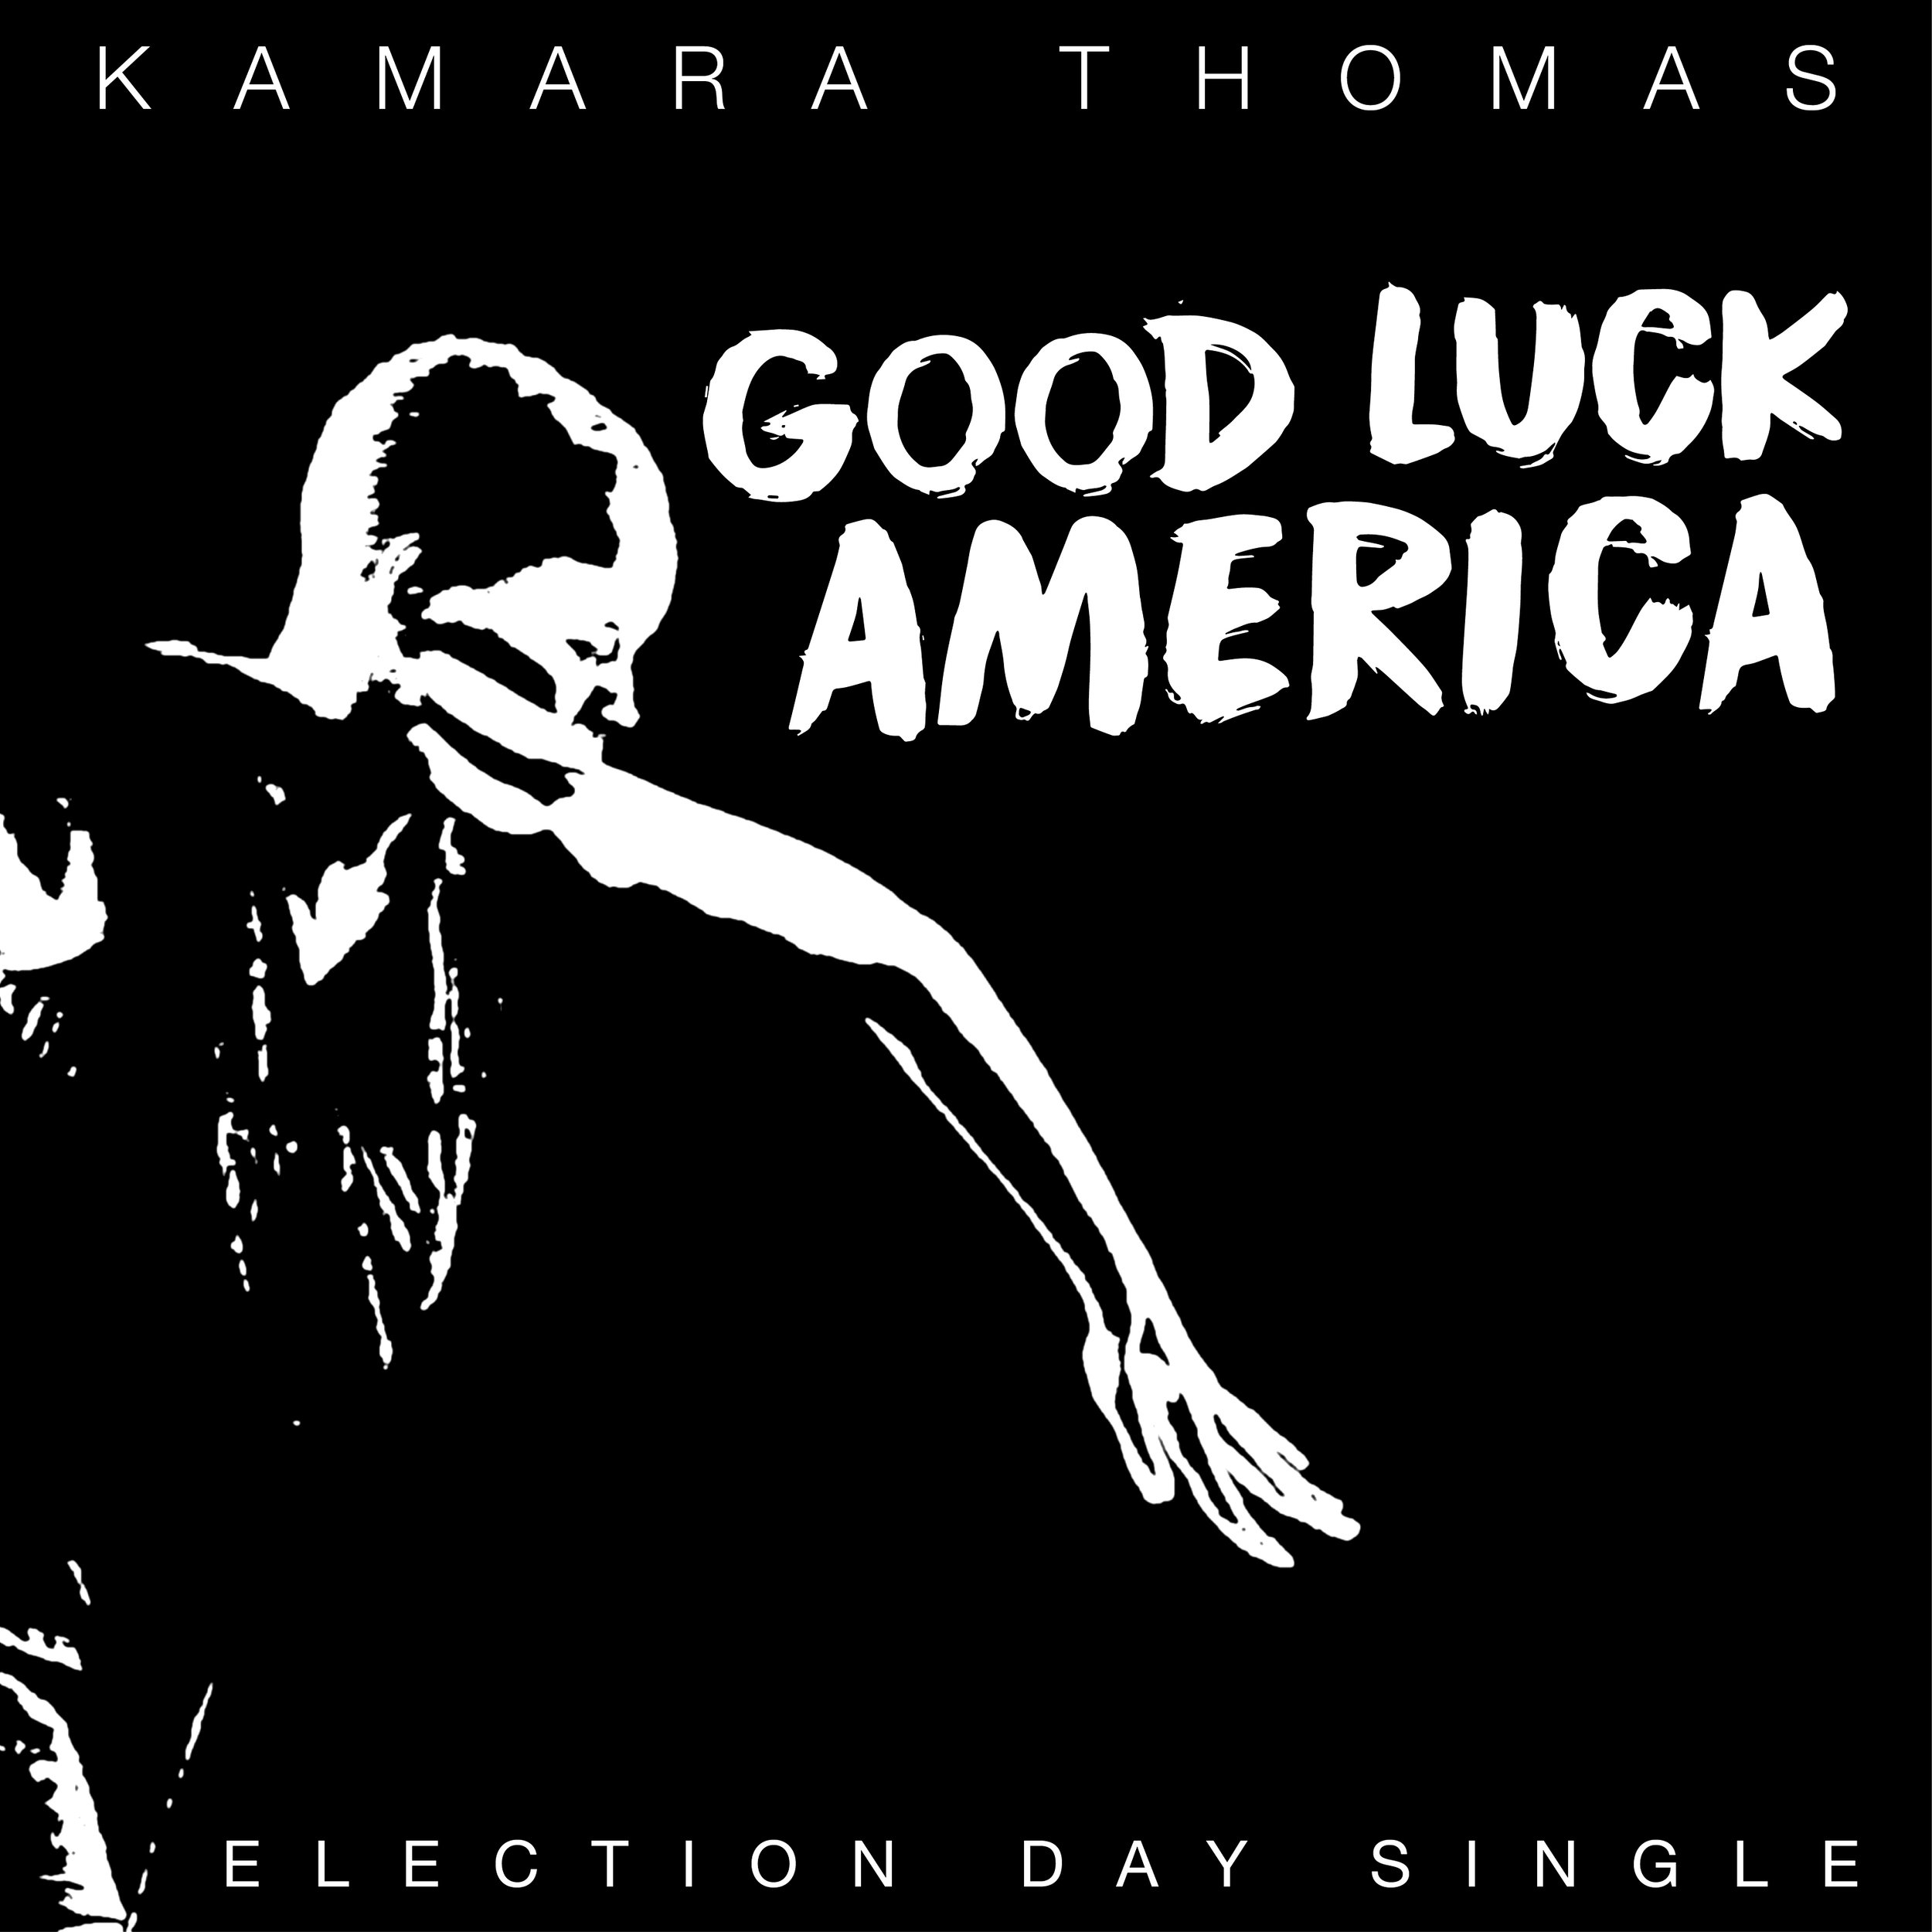 FRI 11/2 - Good Luck America single and video release day!!